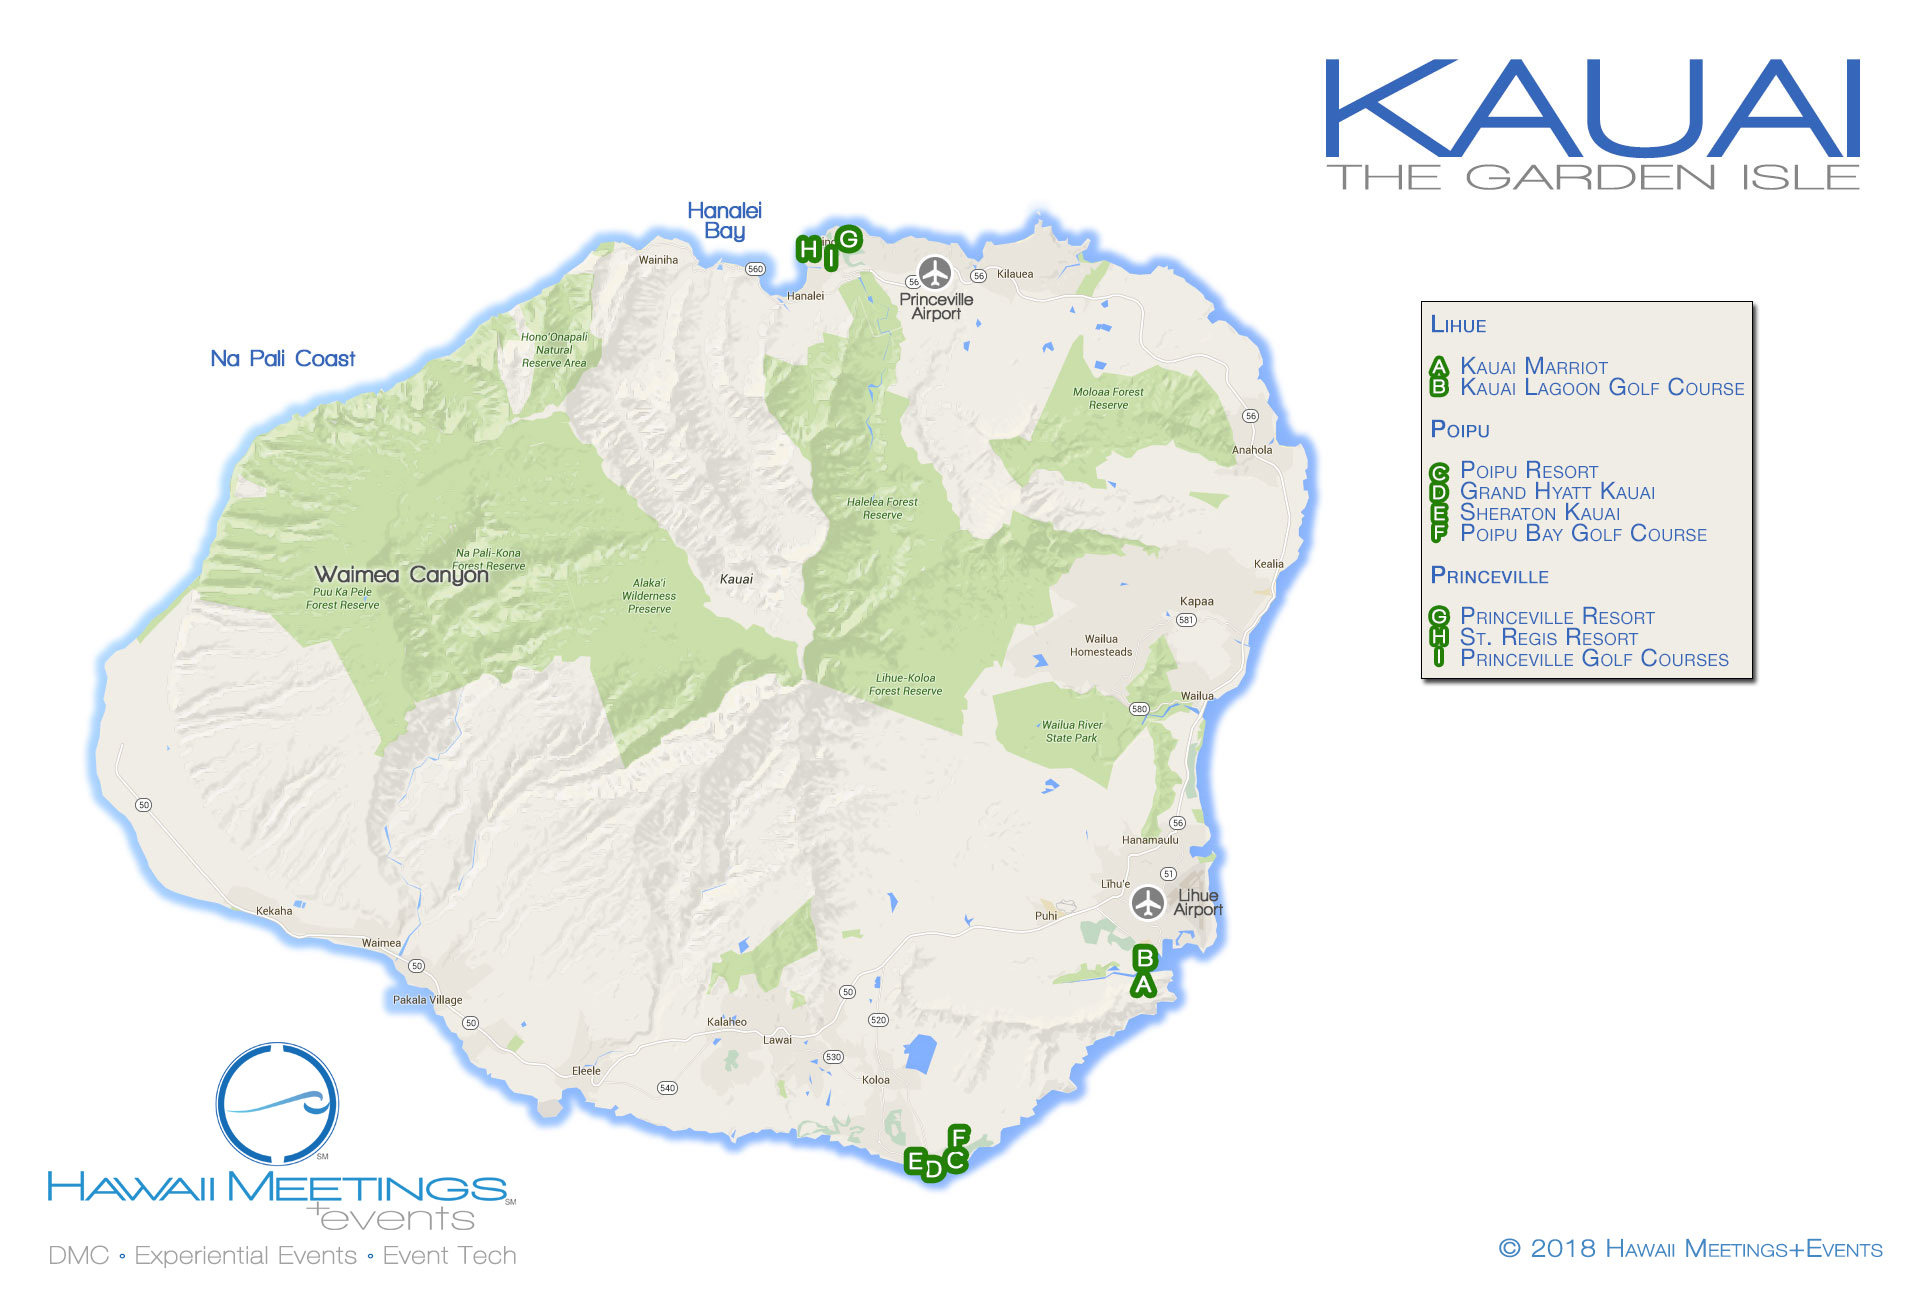 Meeting and incentive properties on the Hawaiian island of Kauai